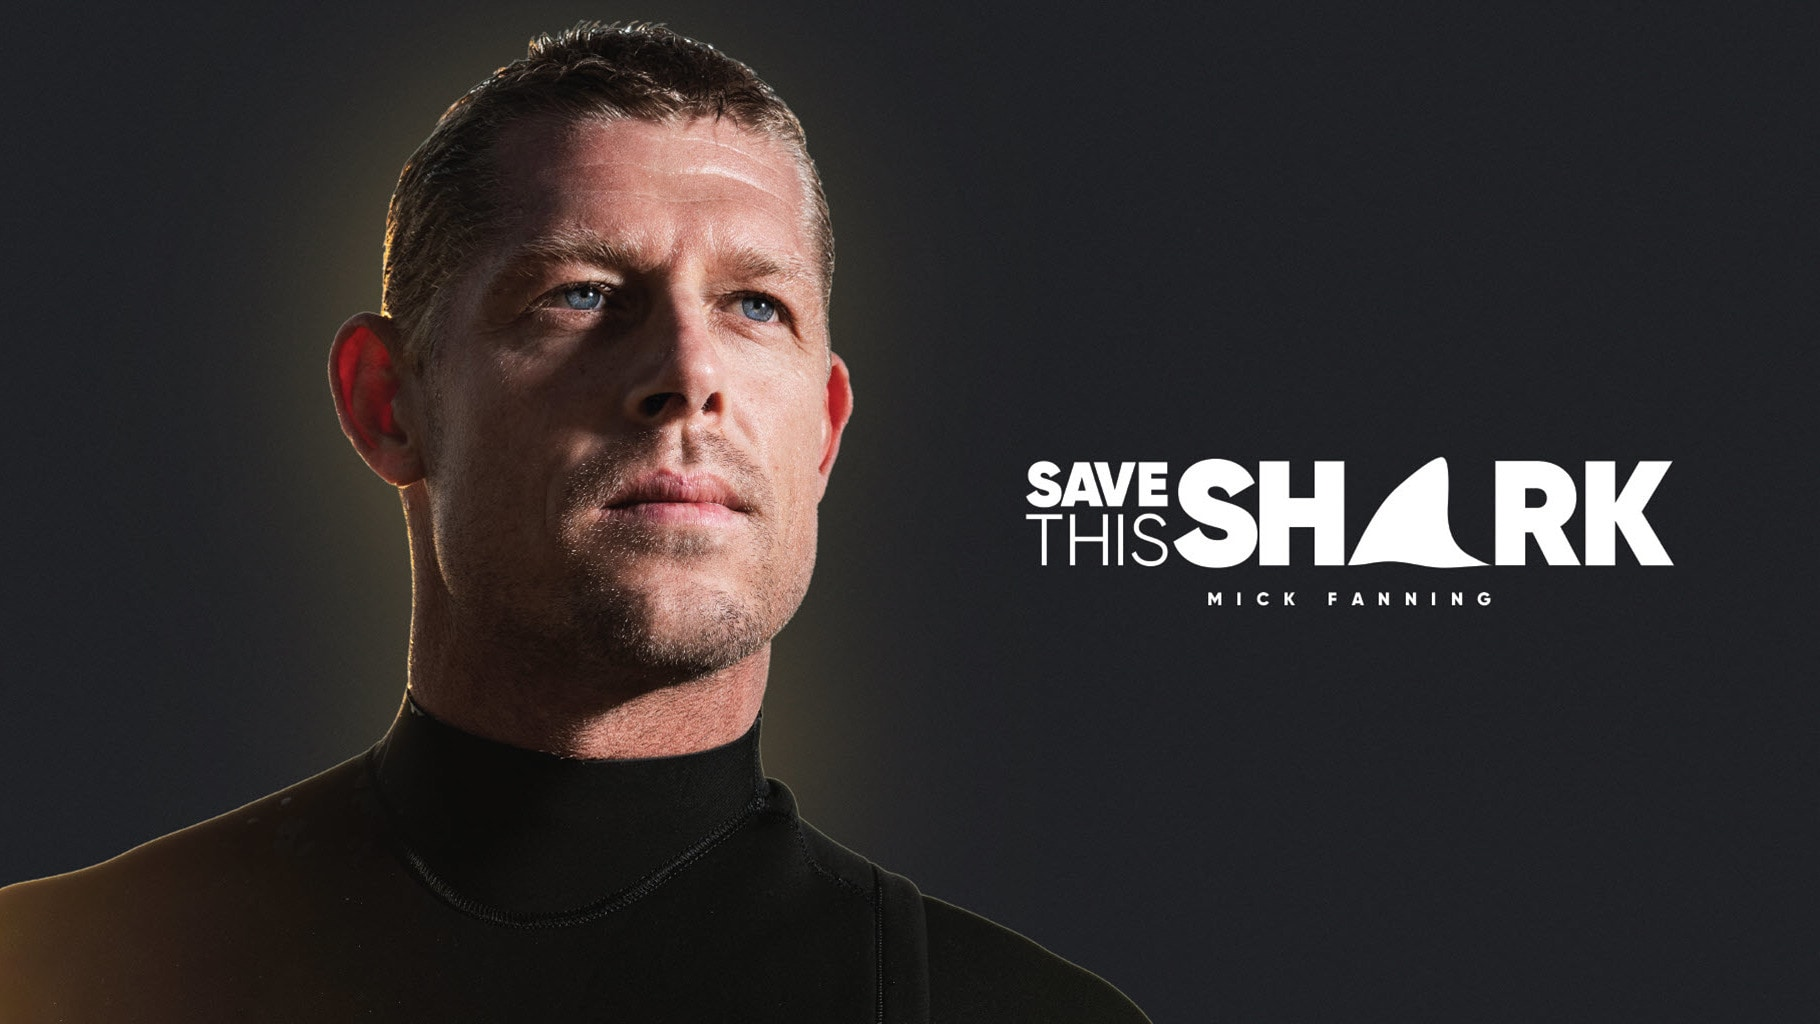 Save This Shark! Catch the new show from Nat Geo and Aussie legend, Mick Fanning